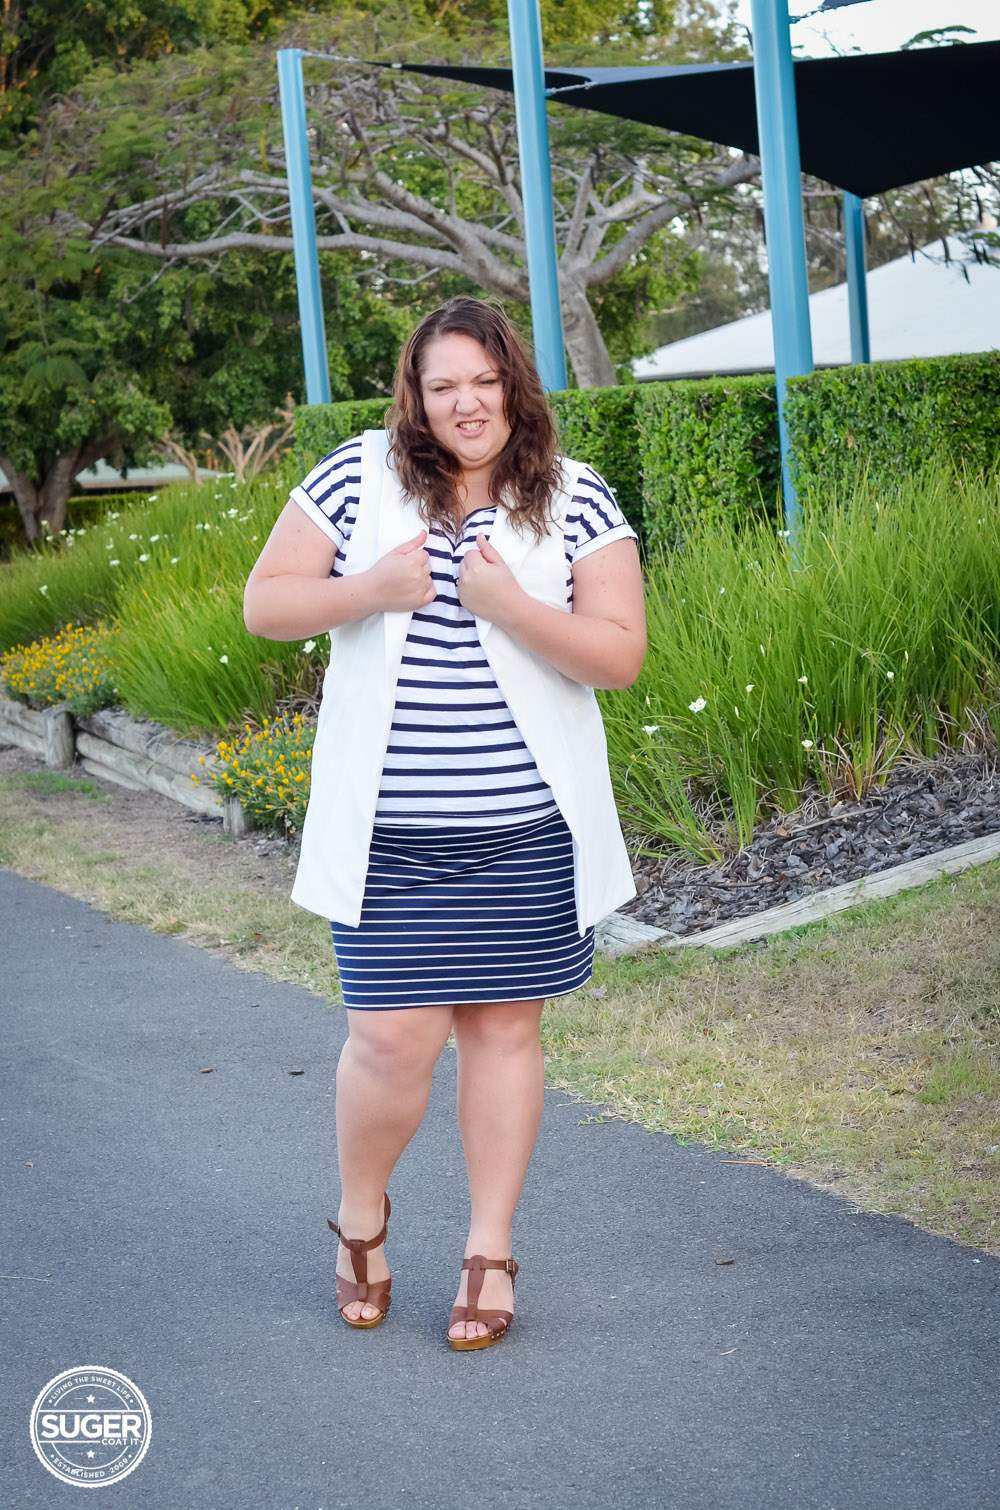 suger coat it plus size fashion blog bloopers post-6